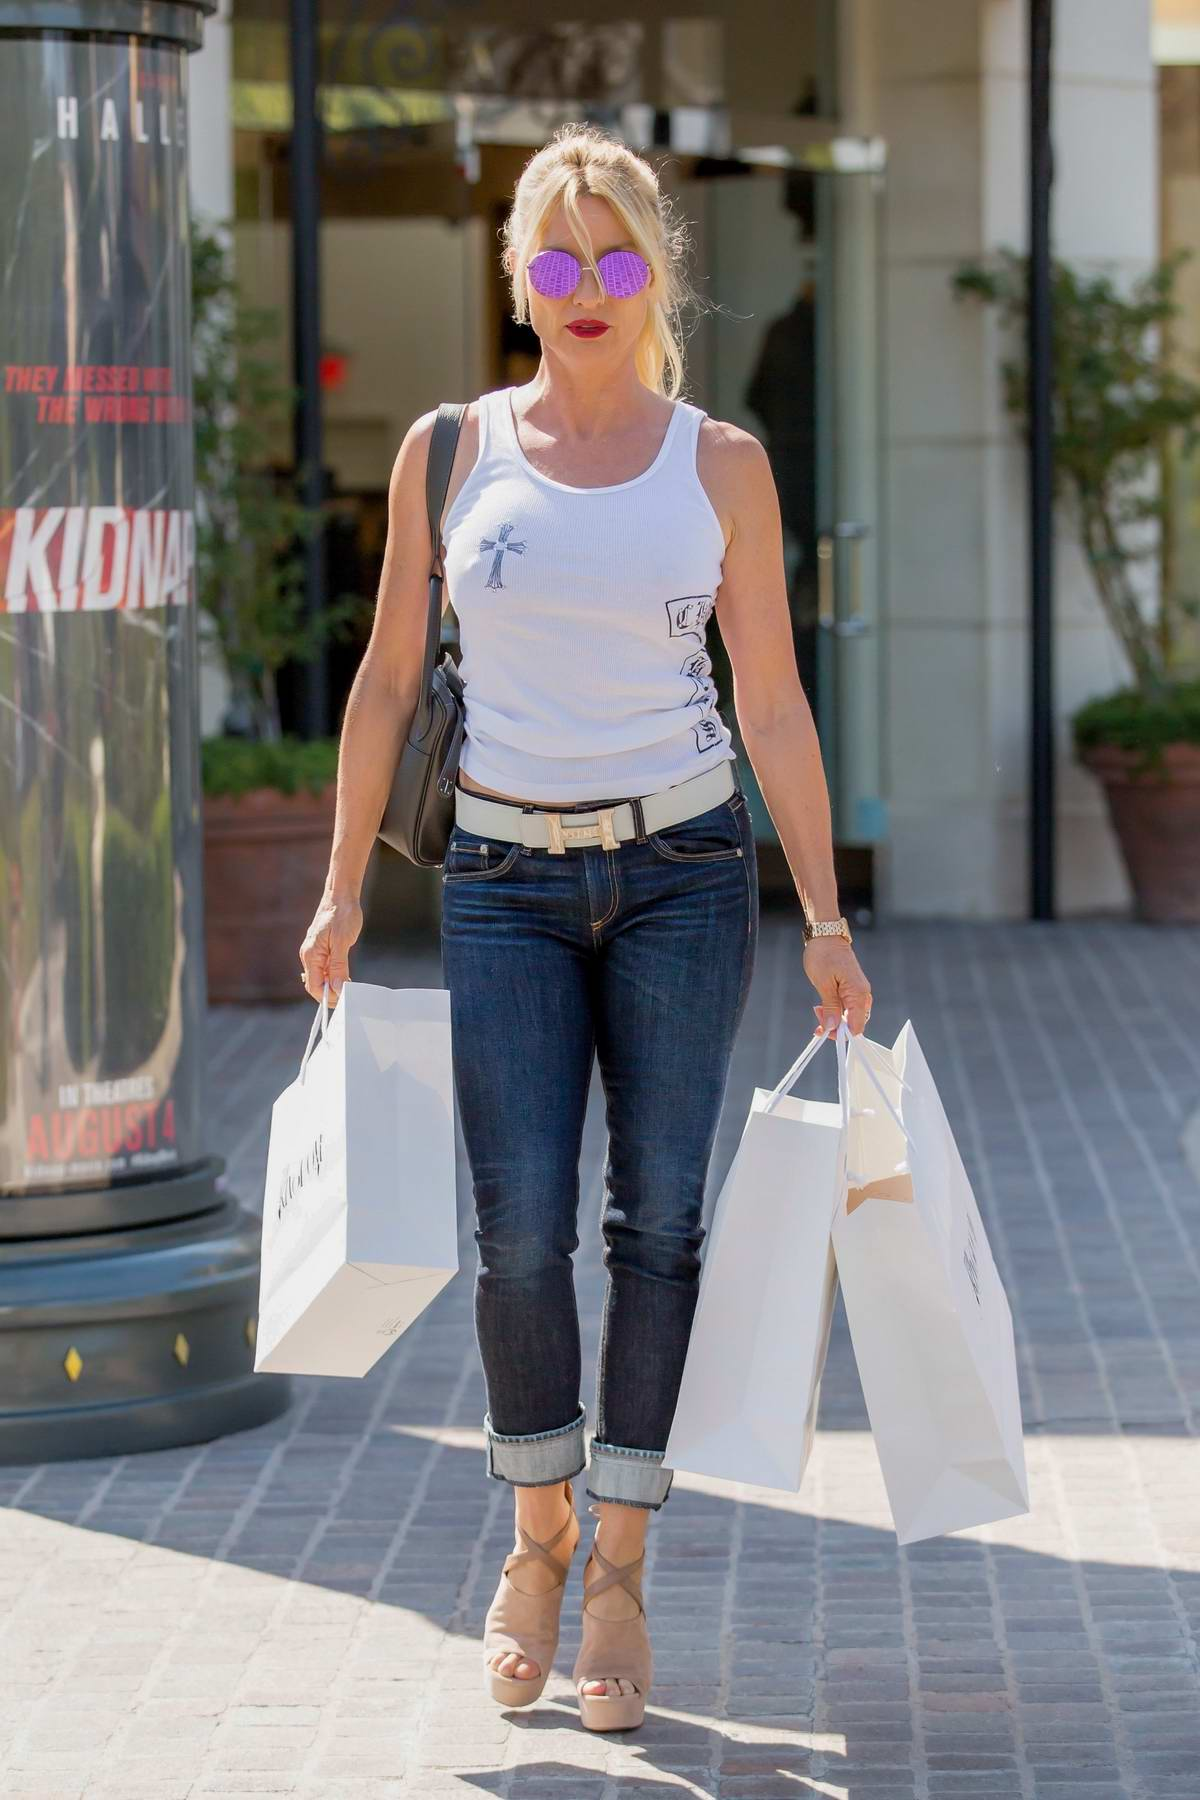 Nicollette Sheridan out shopping in Calabasas, California